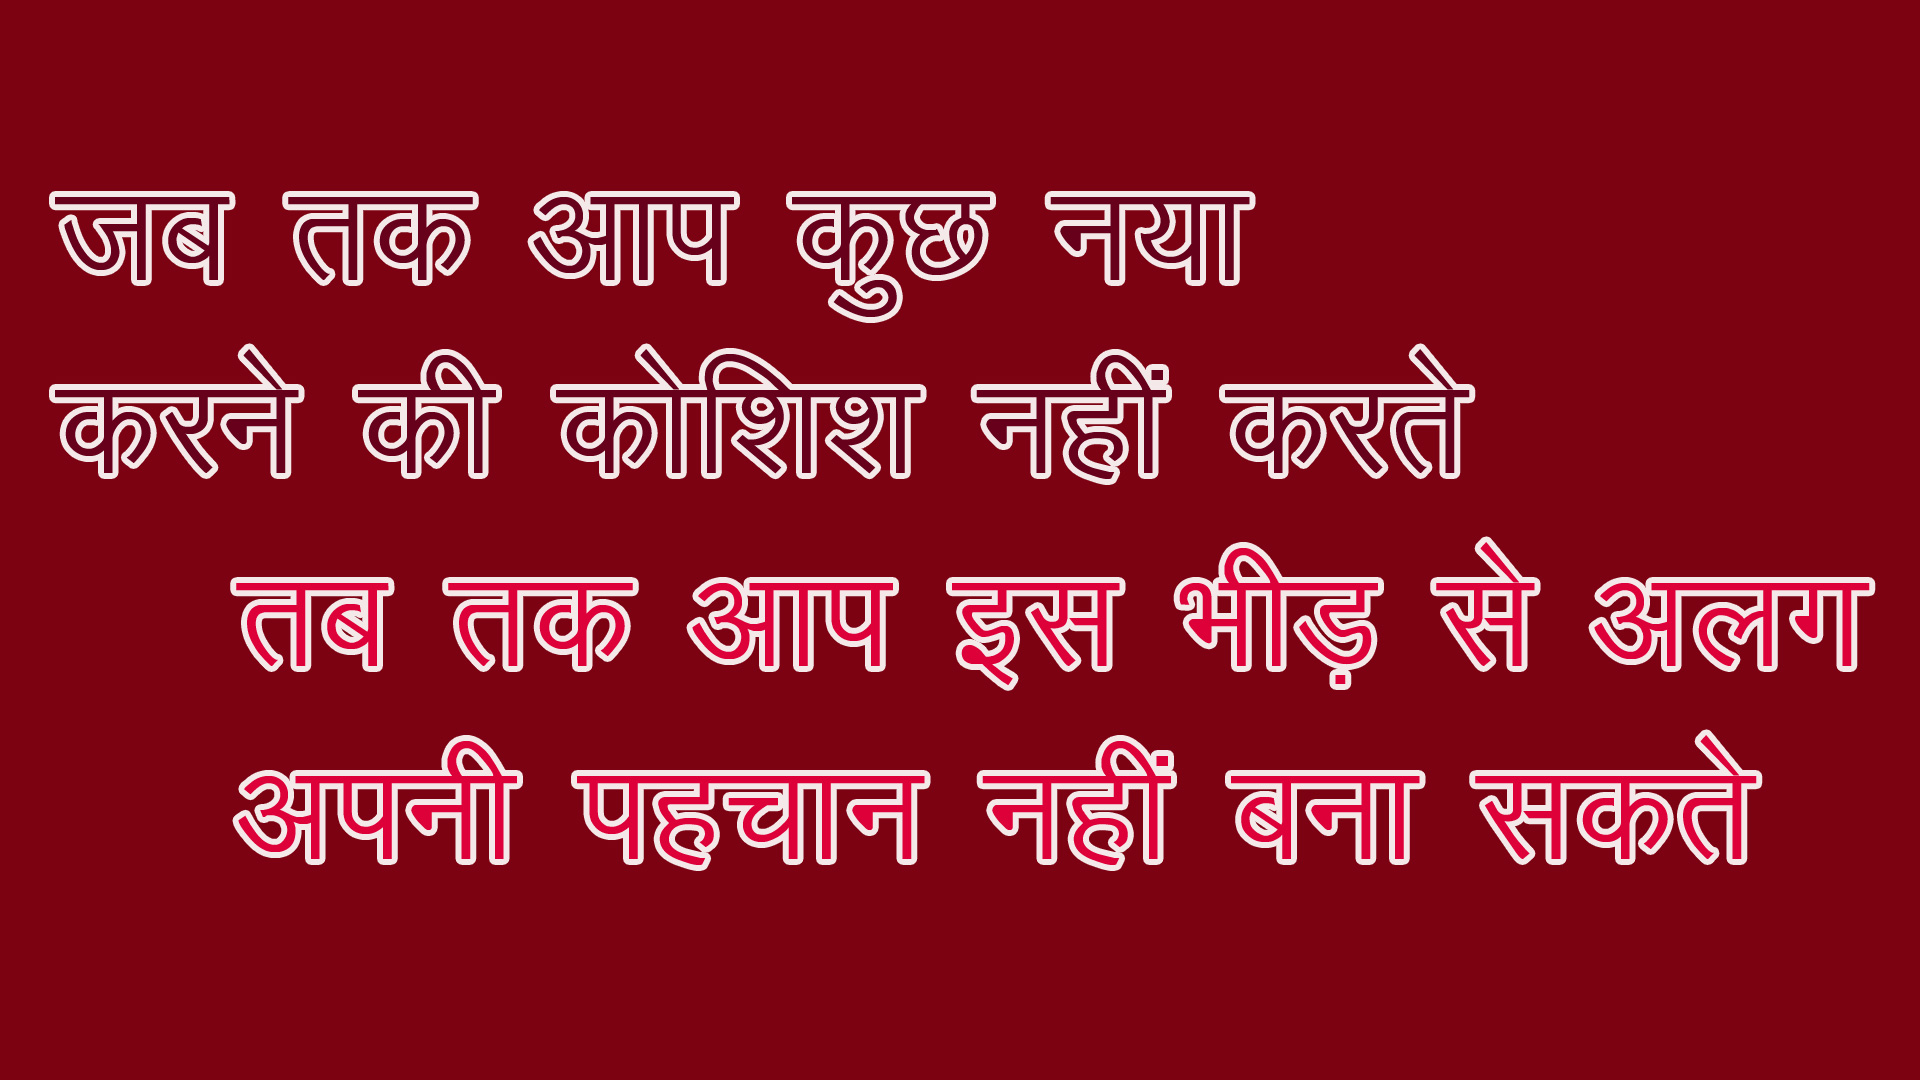 Hindi Status Images Pics Free for Life Quotes